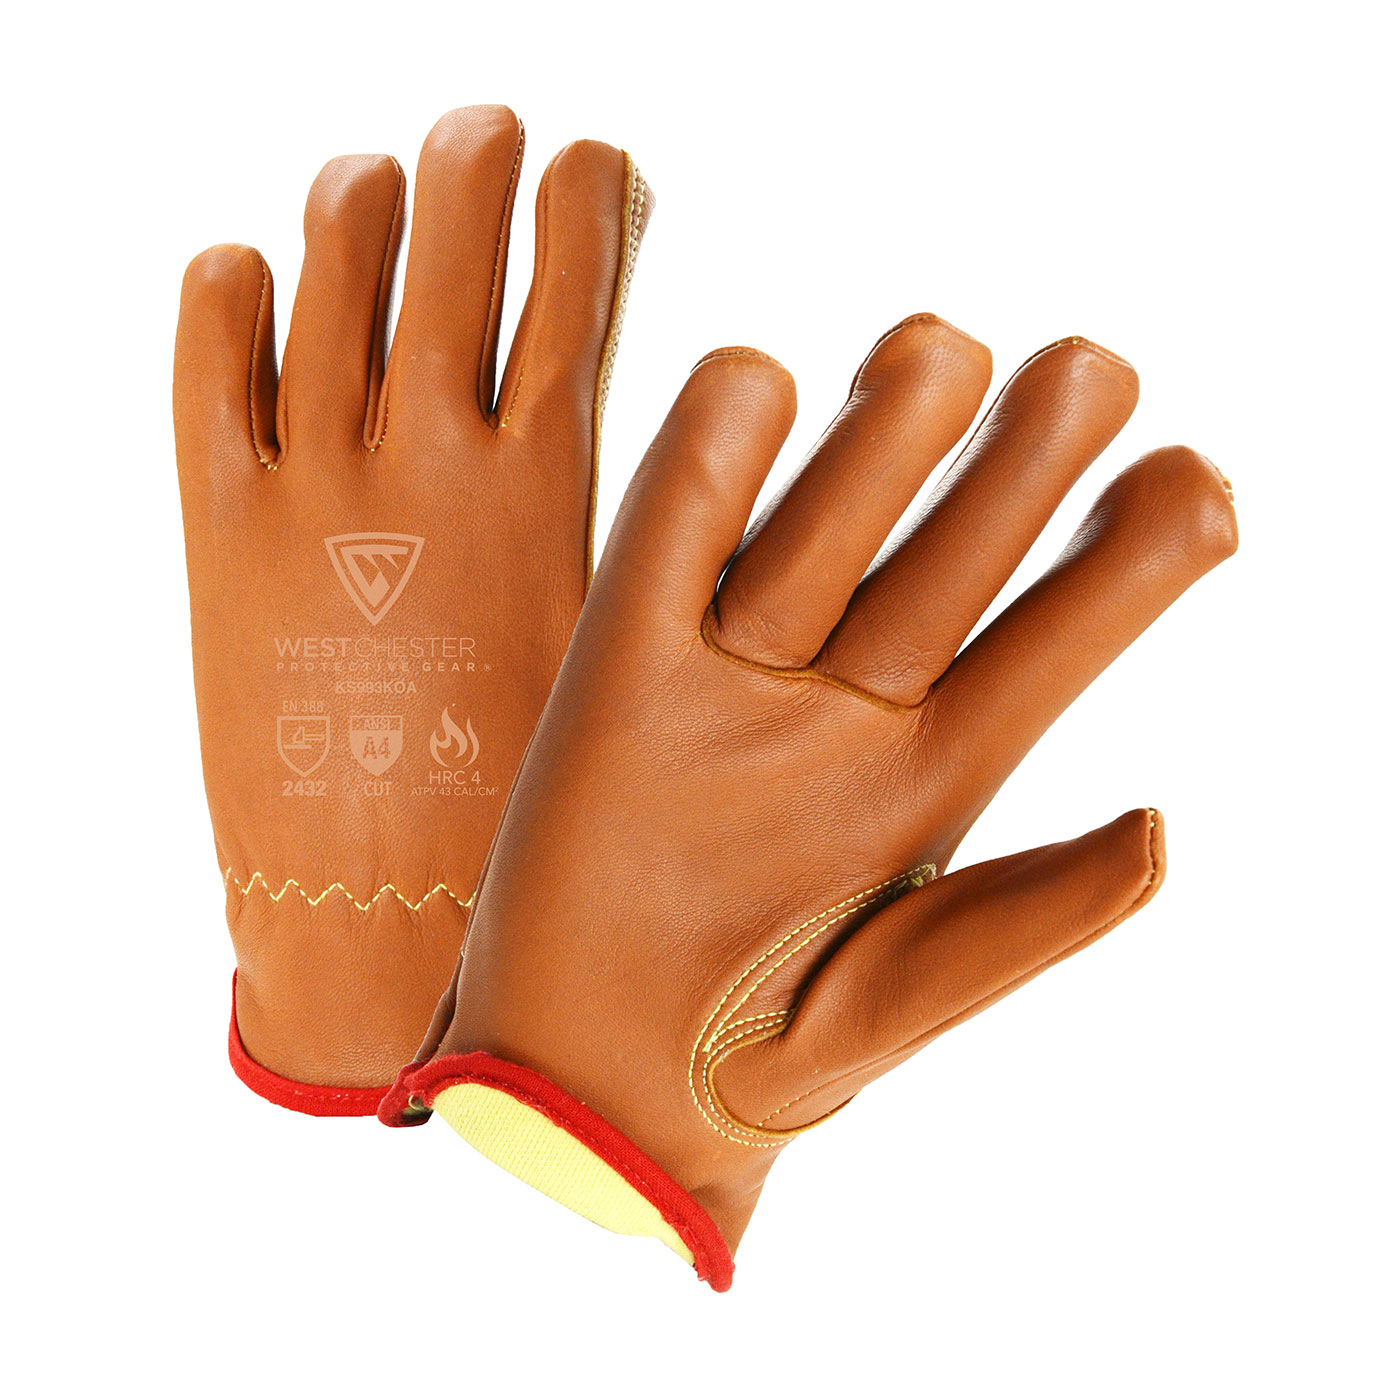 KS993KOA PIP® West Chester® Top Grain Goatskin Leather Drivers Glove with Para-Aramid Lining and Keystone Thumb feature Oil Armor™